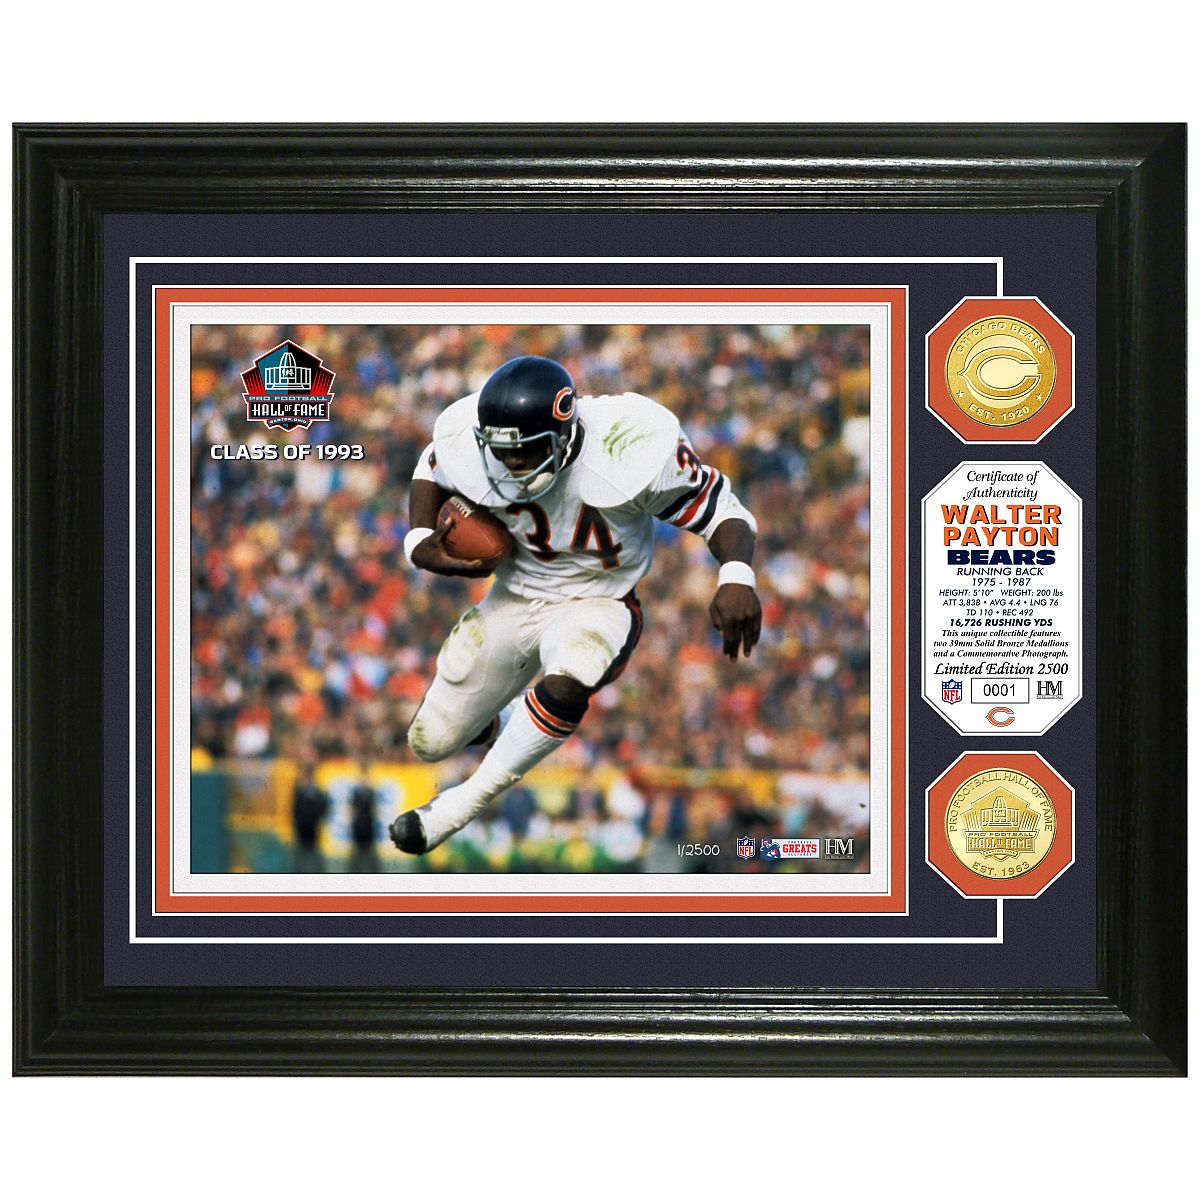 Walter Payton Pro Football Hall of Fame Bronze Coin Photo Mint